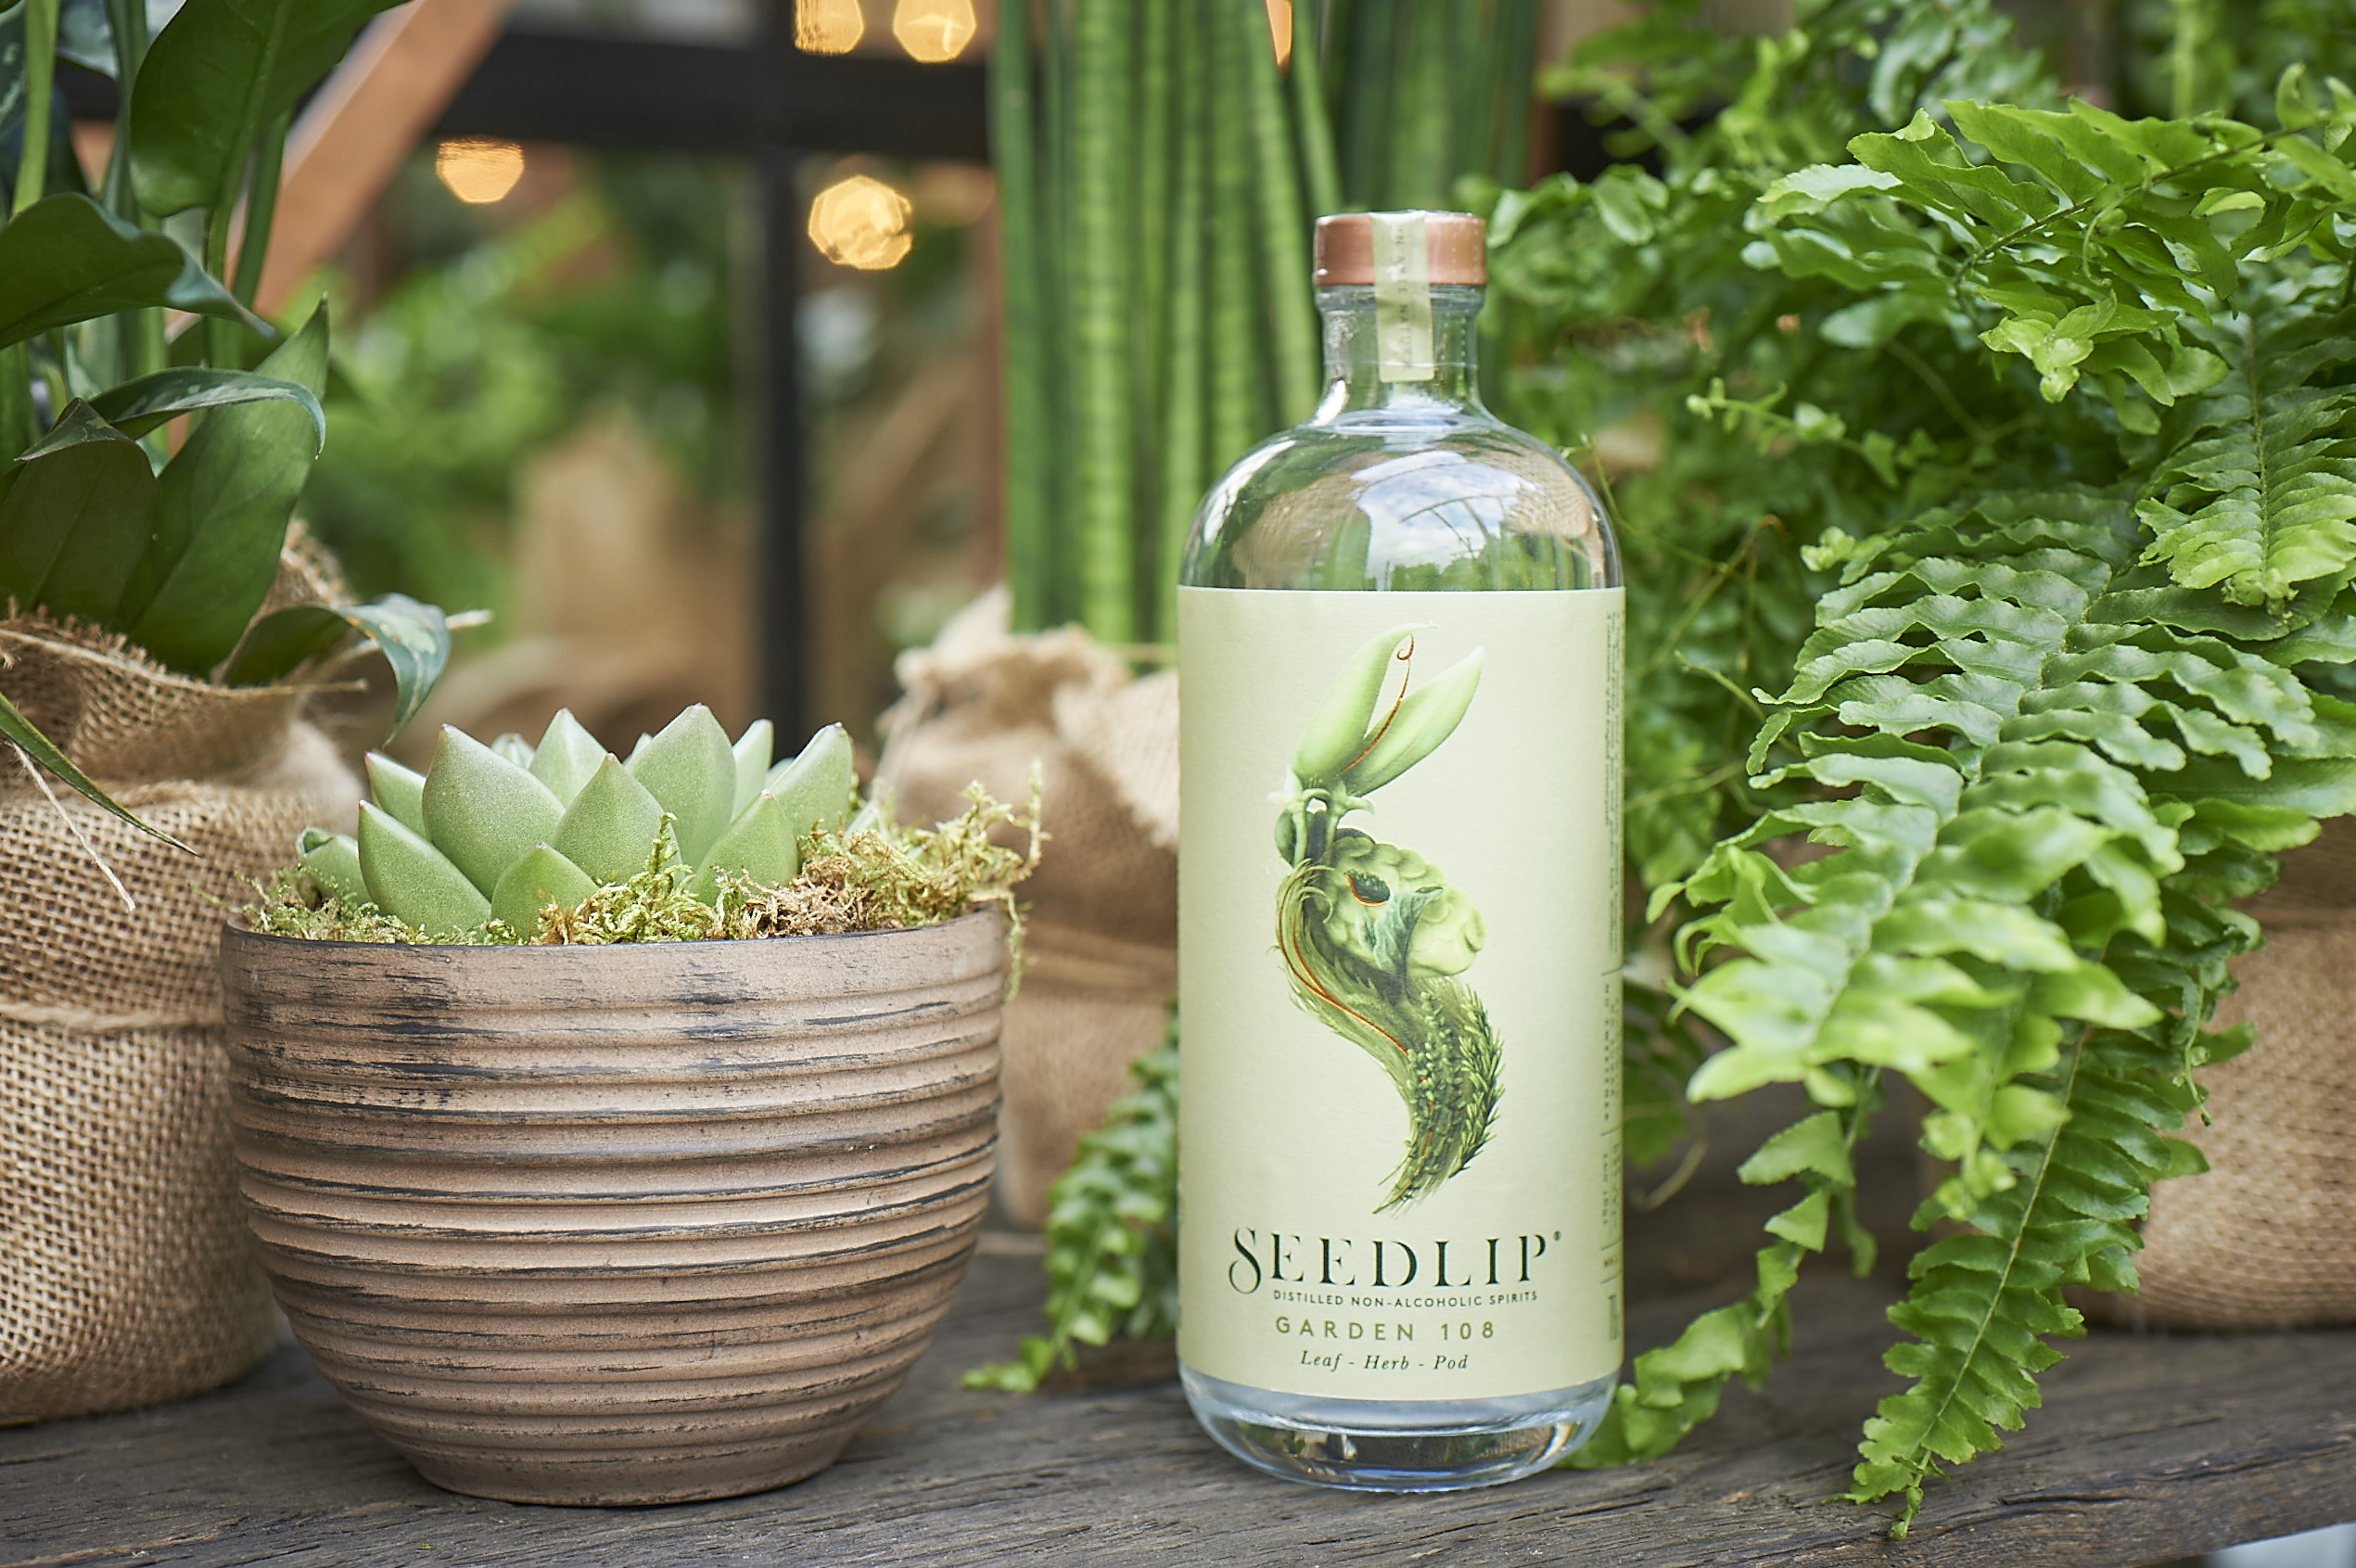 Seedlip's Garden 108, a non-alcoholic spirit crafted to reflect and celebrate the English countryside.